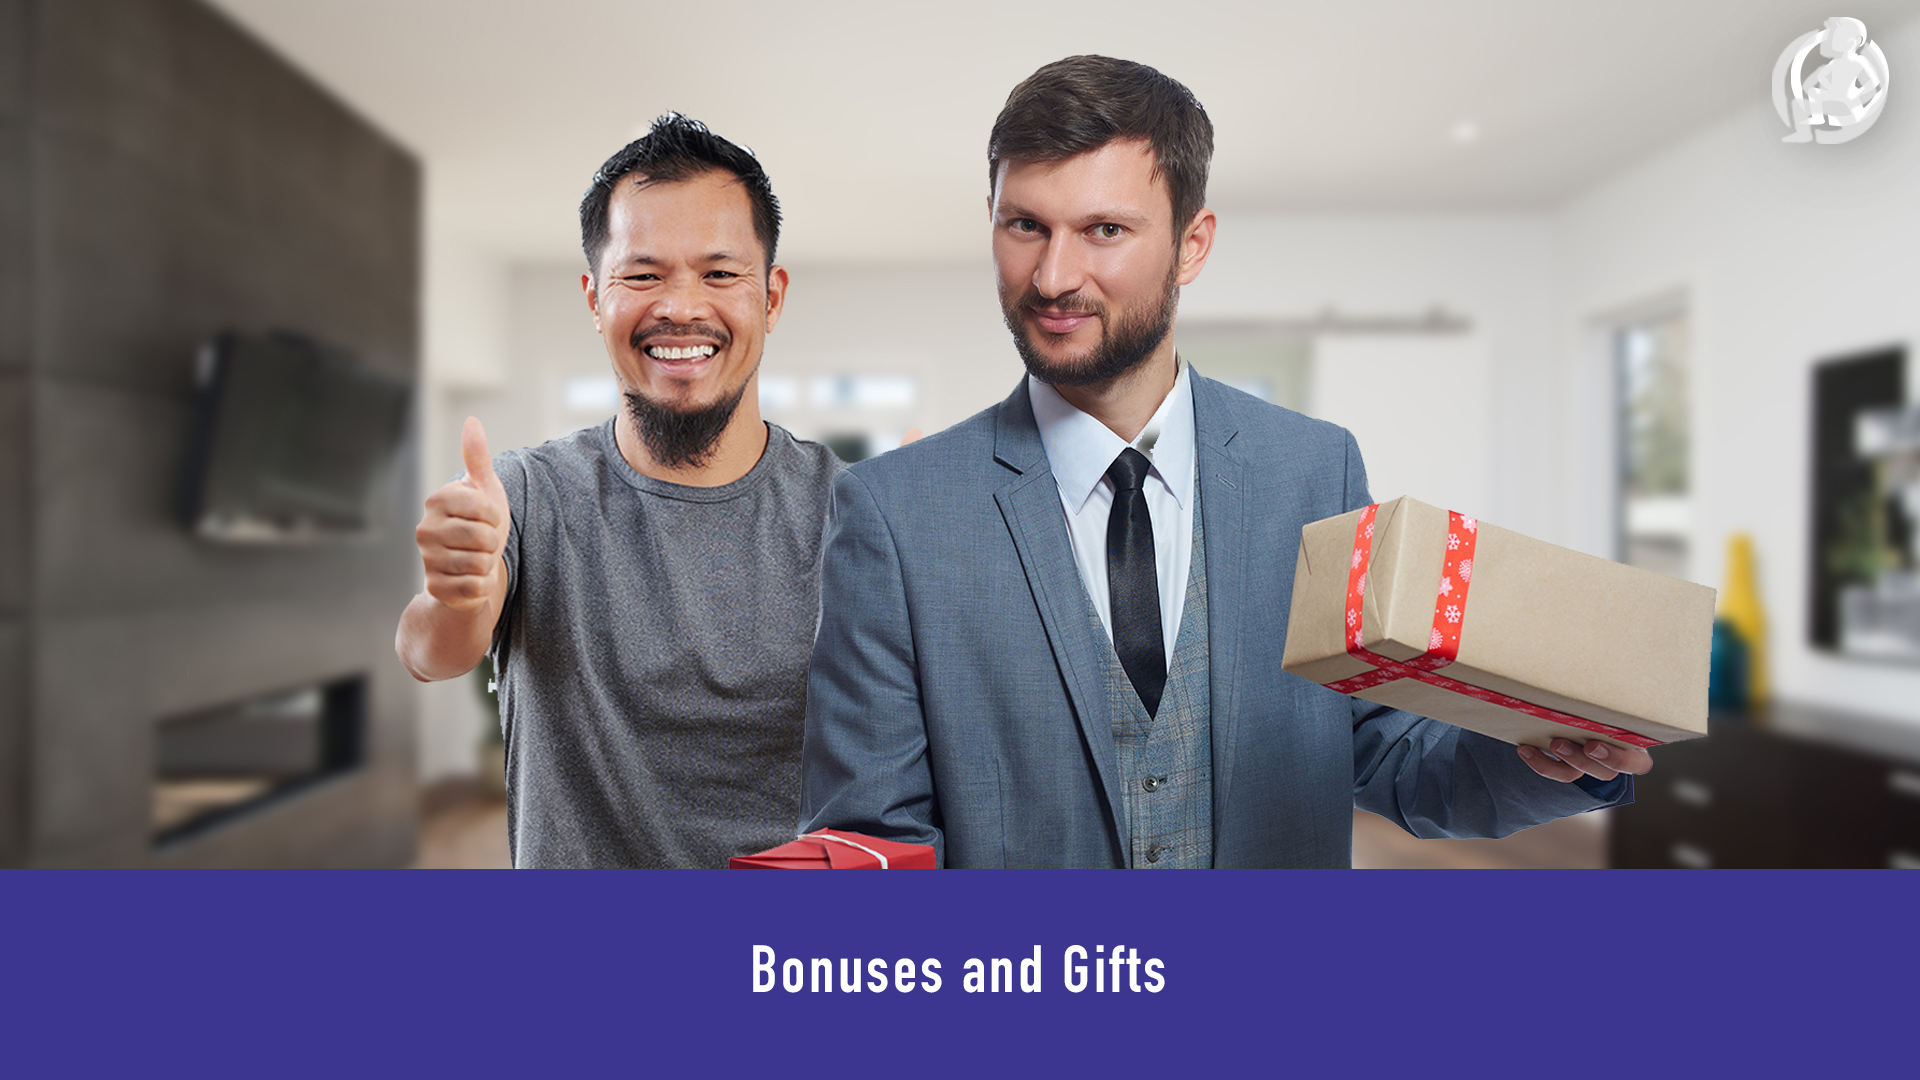 Bonuses and Gifts – Practical Advice